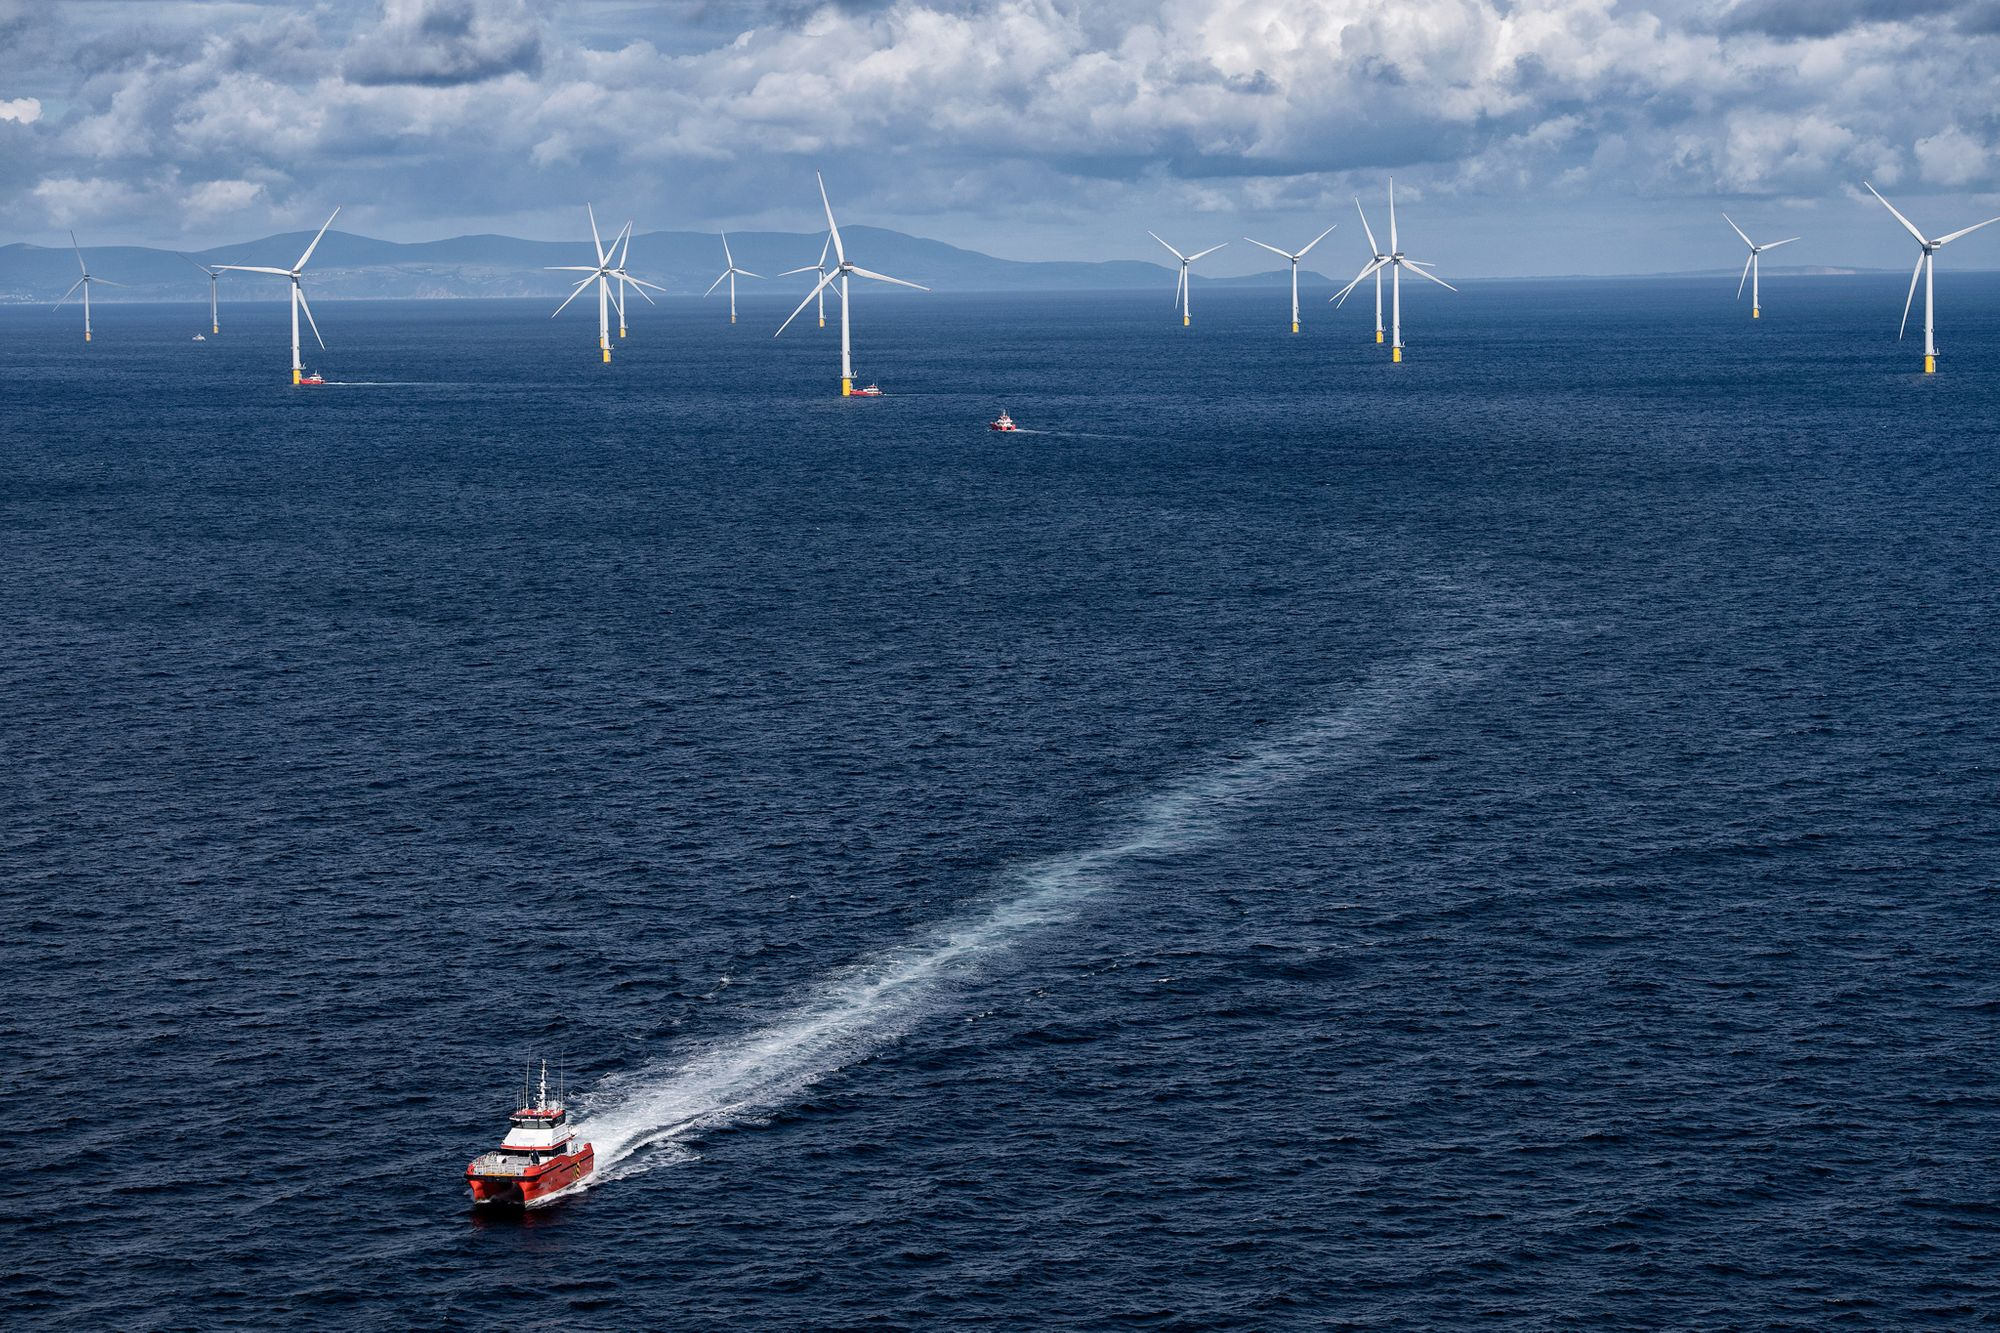 Maintenance ships tending to Hornsea Projects wind farm array in the North Sea, England.